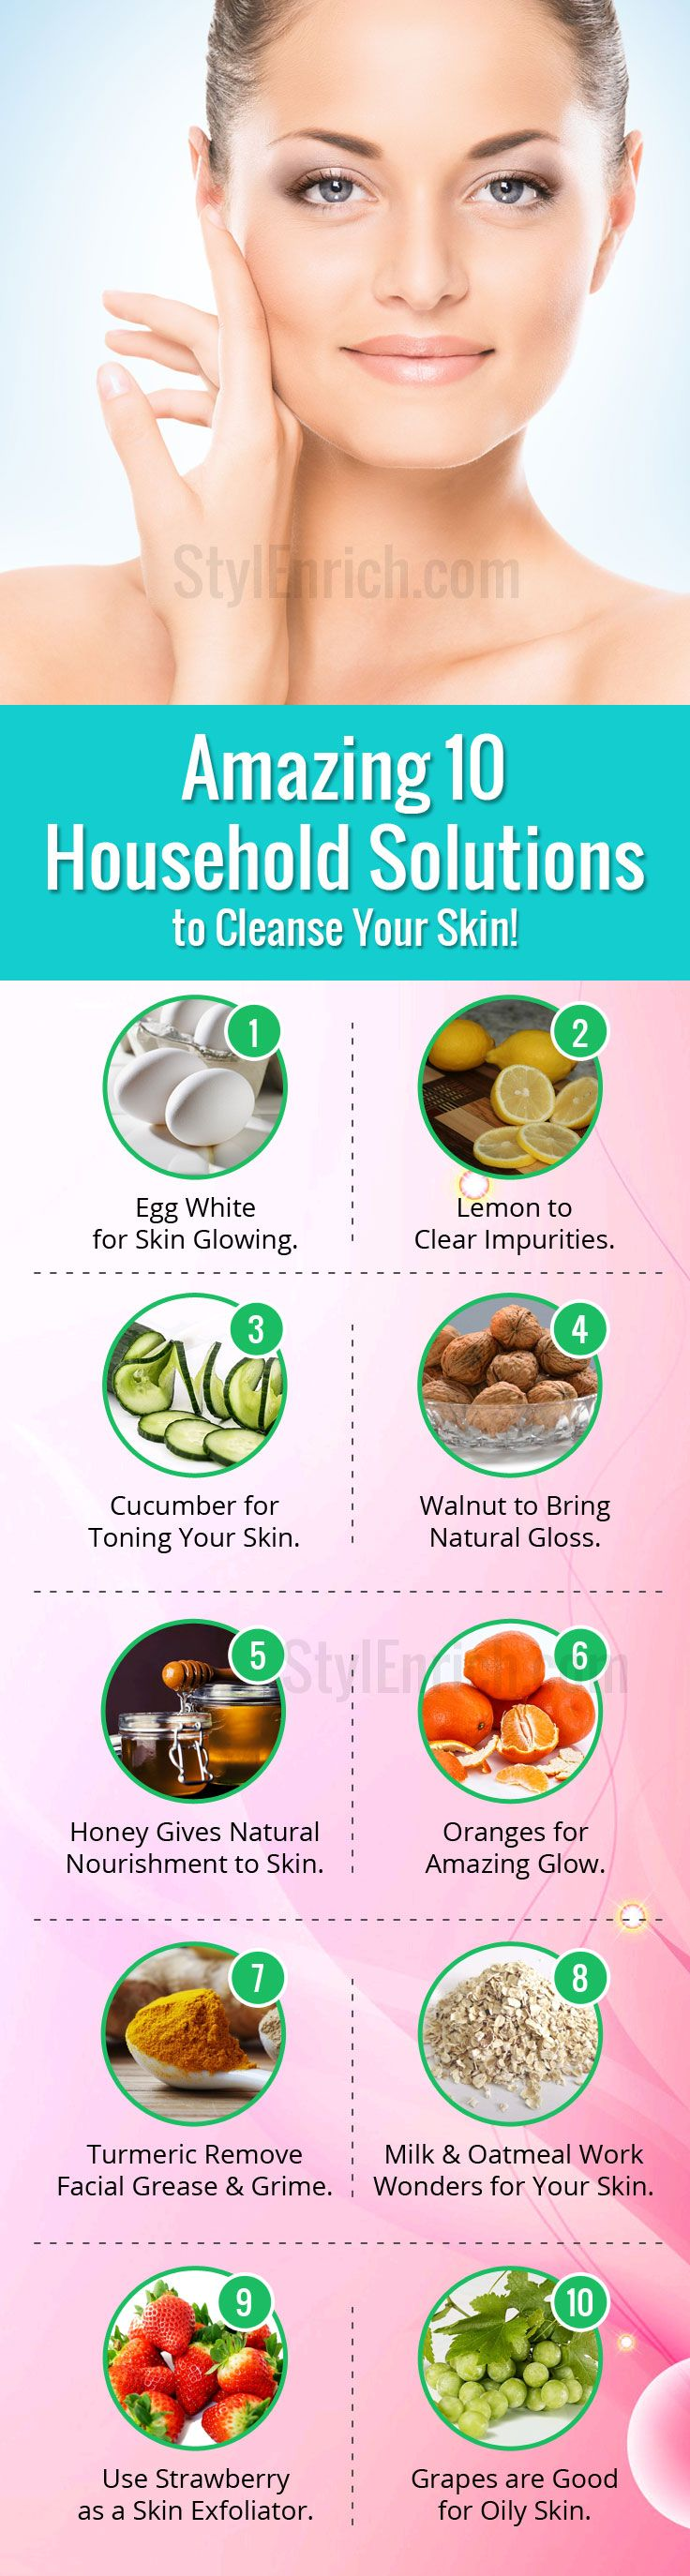 If you want to attain spot free, healthy and glowing skin, you can use common and wallet friendly #DIYSkinCare solutions to cleanse your skin that can make others envious. Here are the top 10 household solutions that can be used to brighten up complexion.